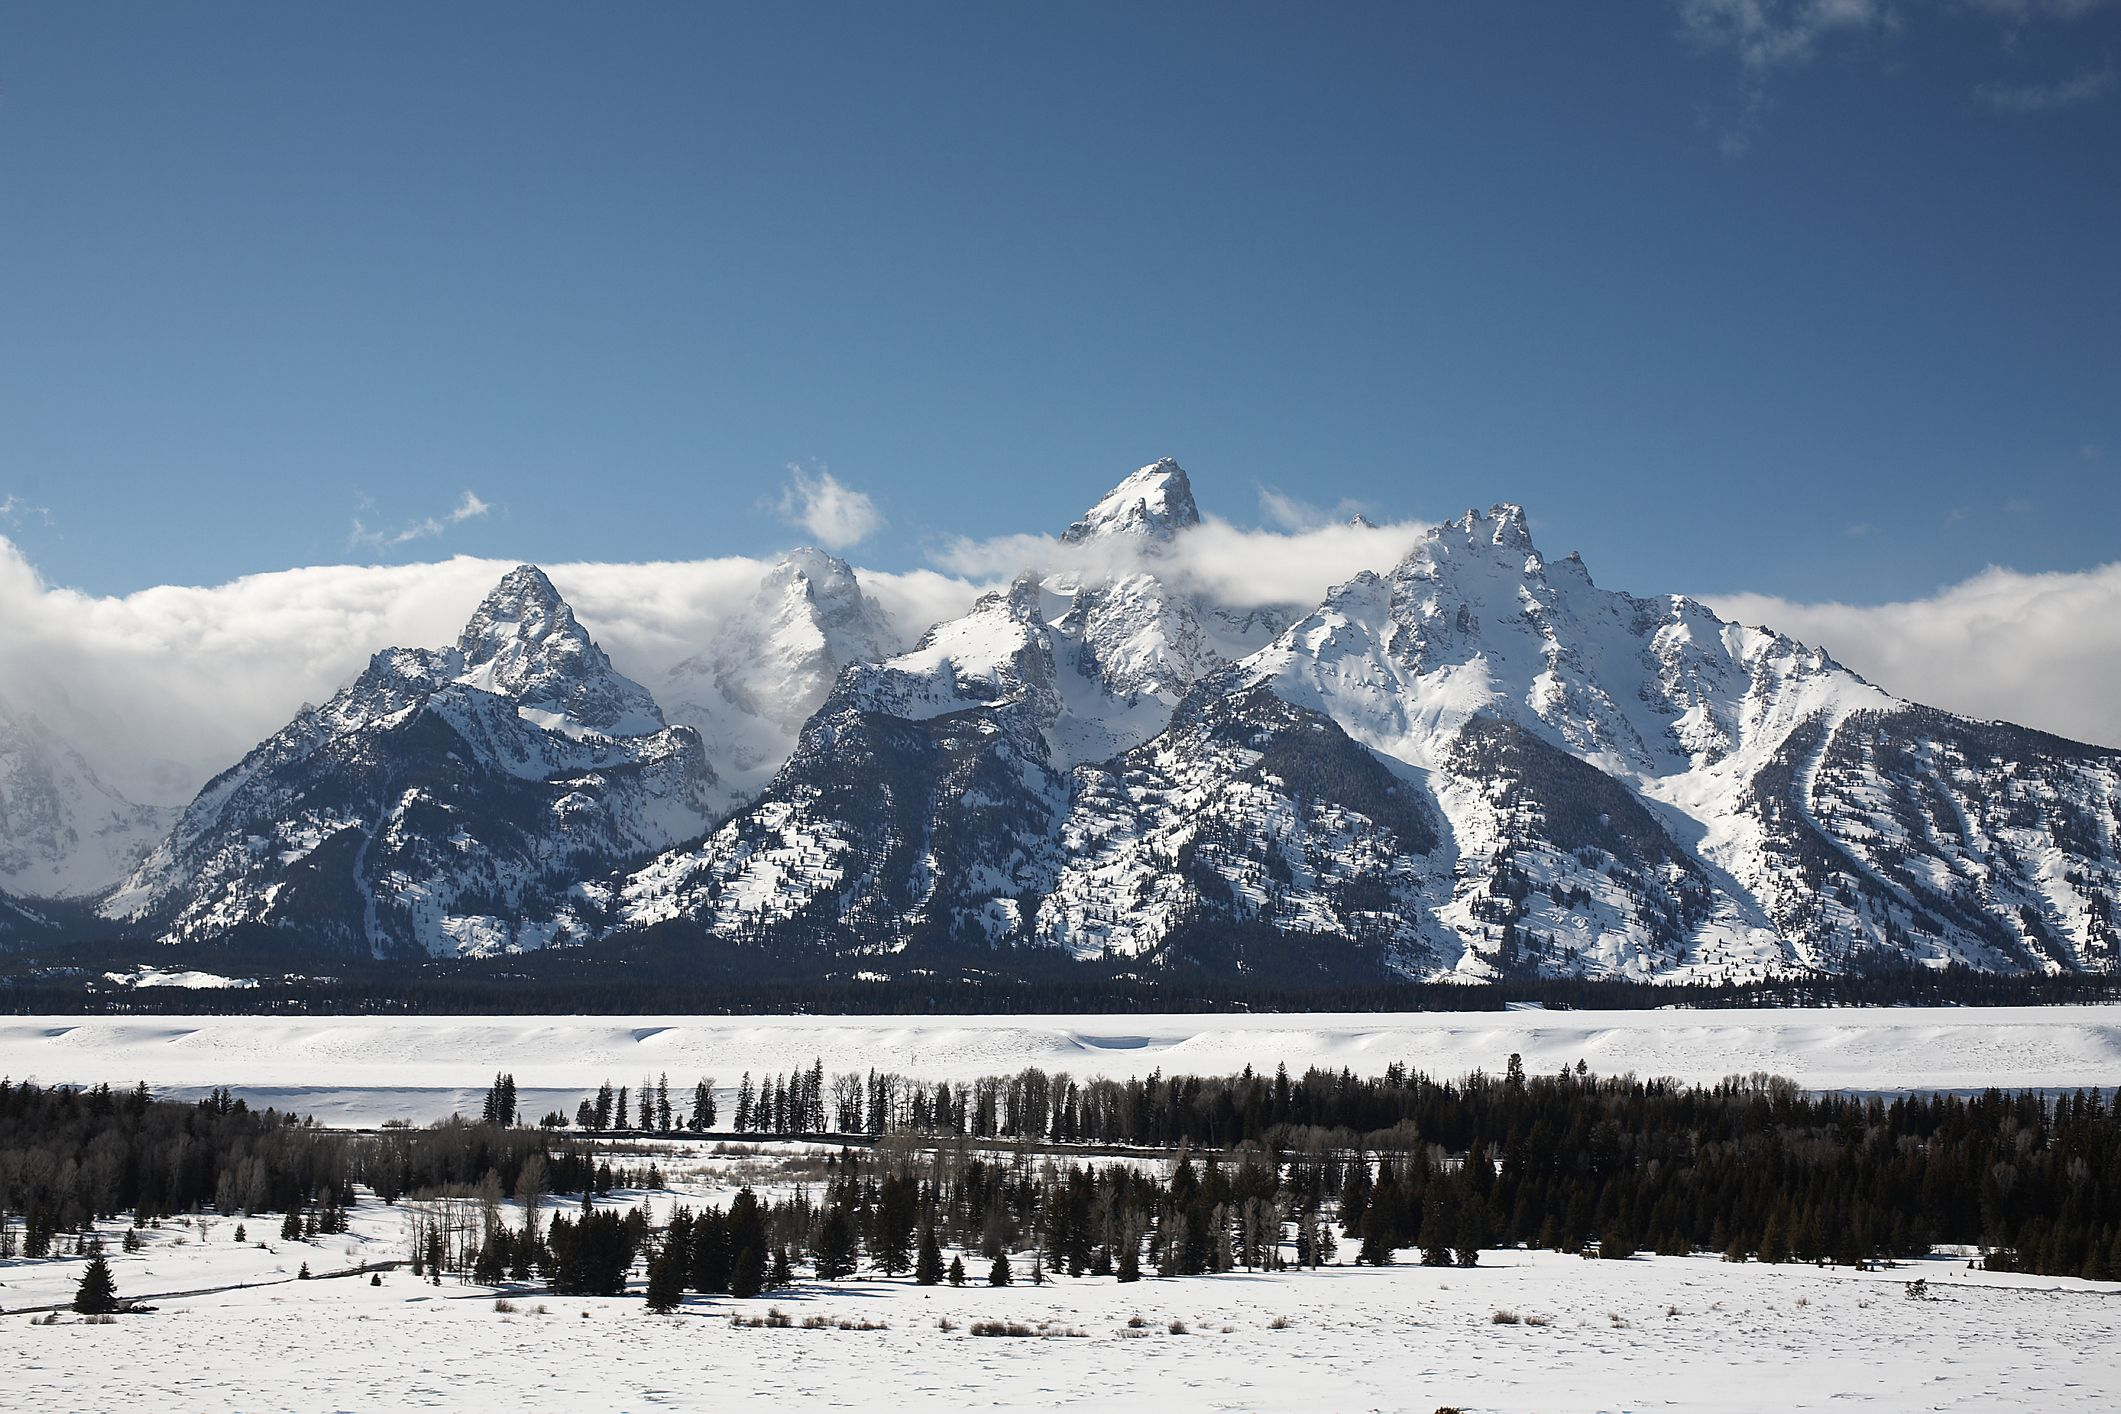 Winter vacations in idaho montana and wyoming for East coast winter getaways